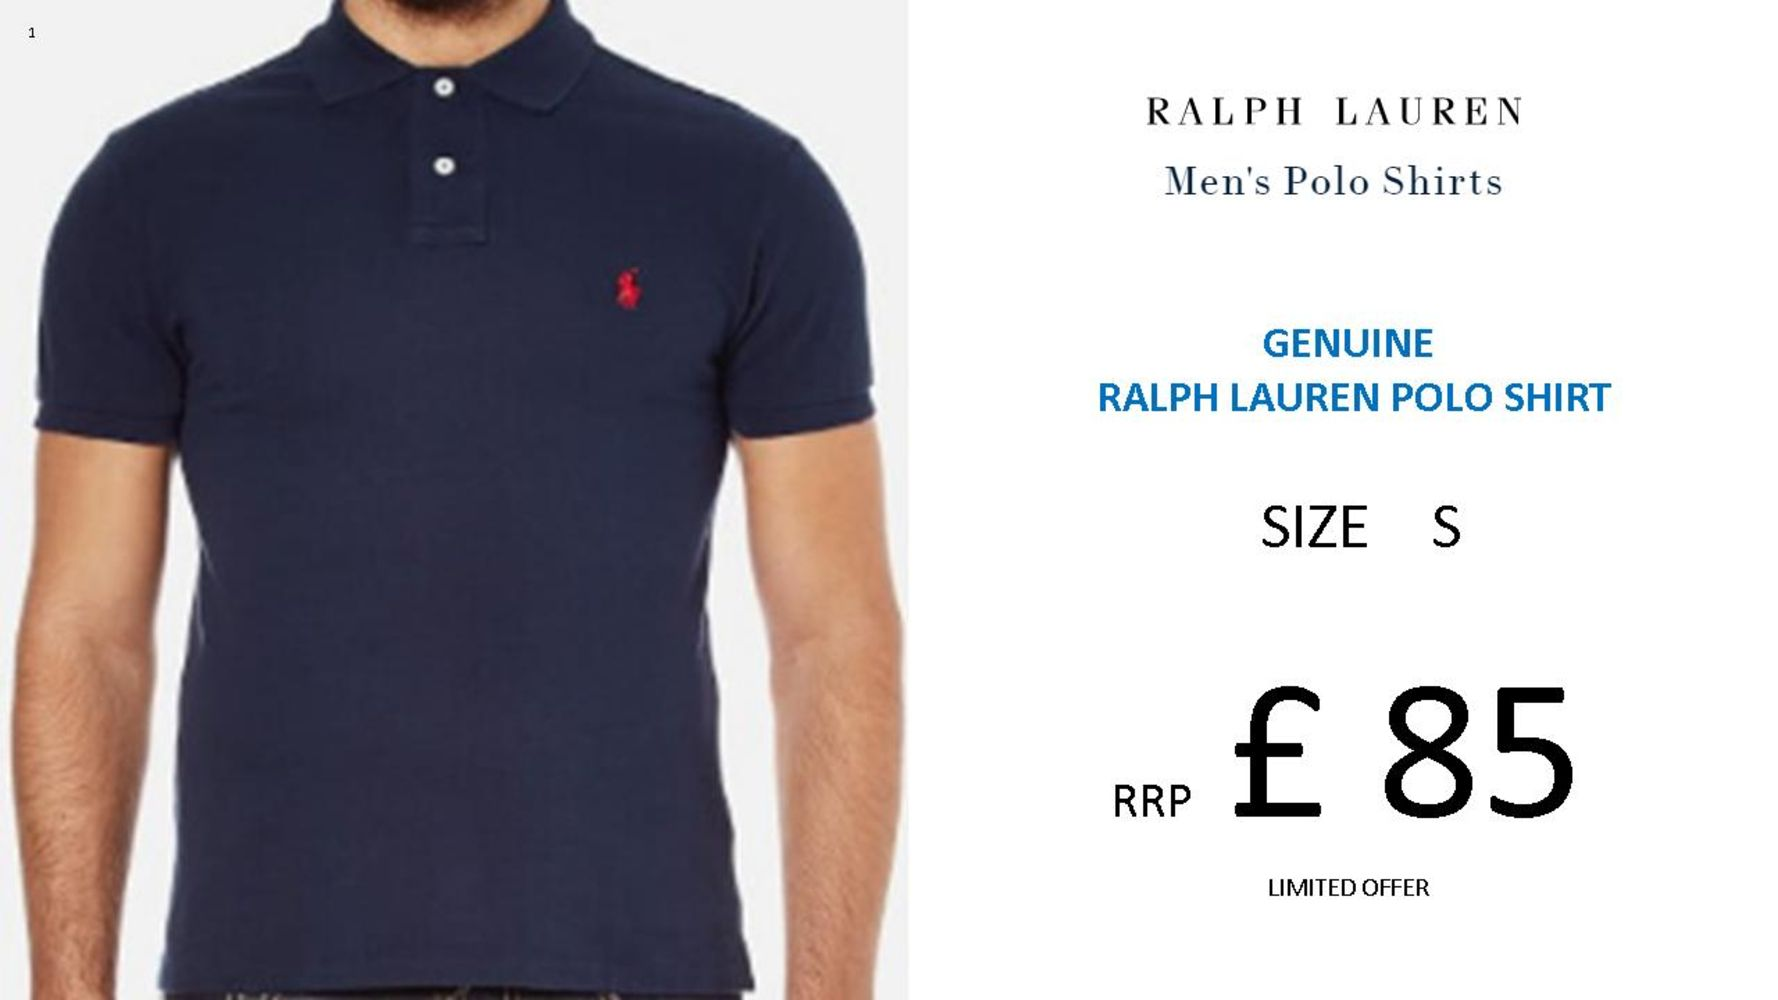 Brand New Polo By Ralph Lauren Iconic Custom Fit Men's Polo Shirts in a Range of Sizes & Colours